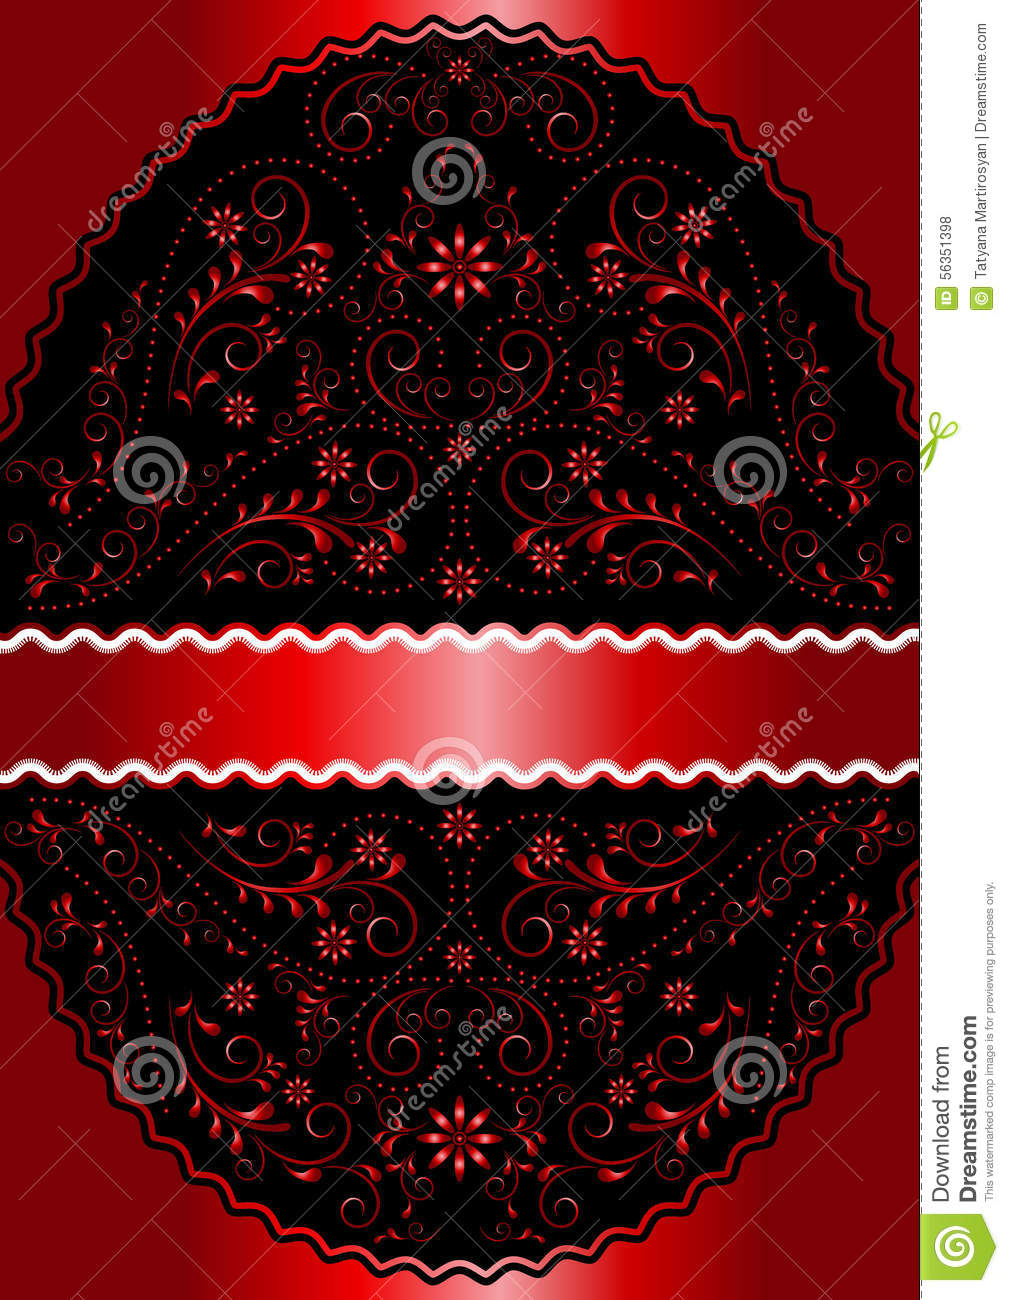 Satin red ribbon in red wavy openwork floral oval frame